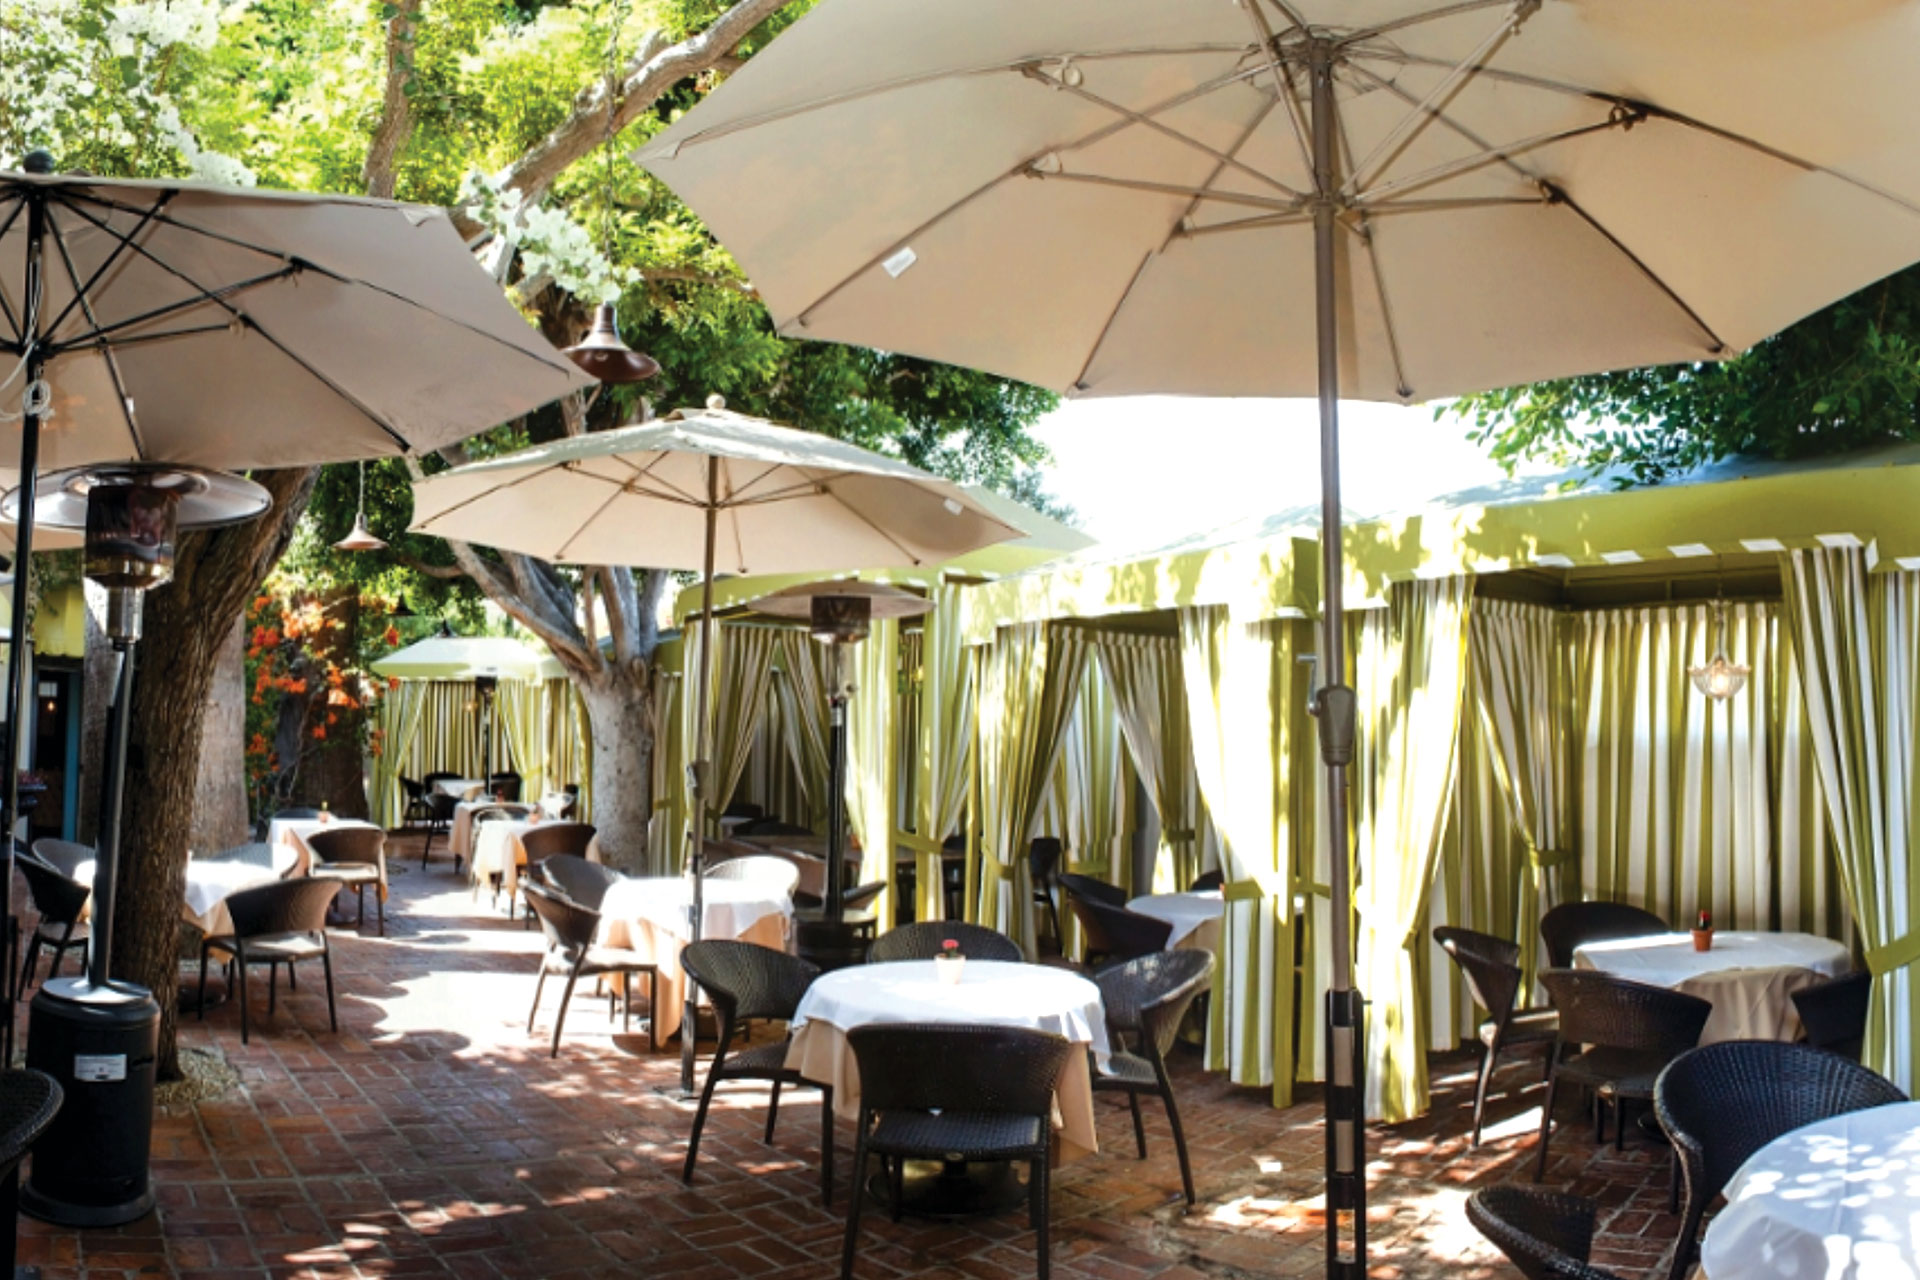 Private party set at the patio with private cabanas